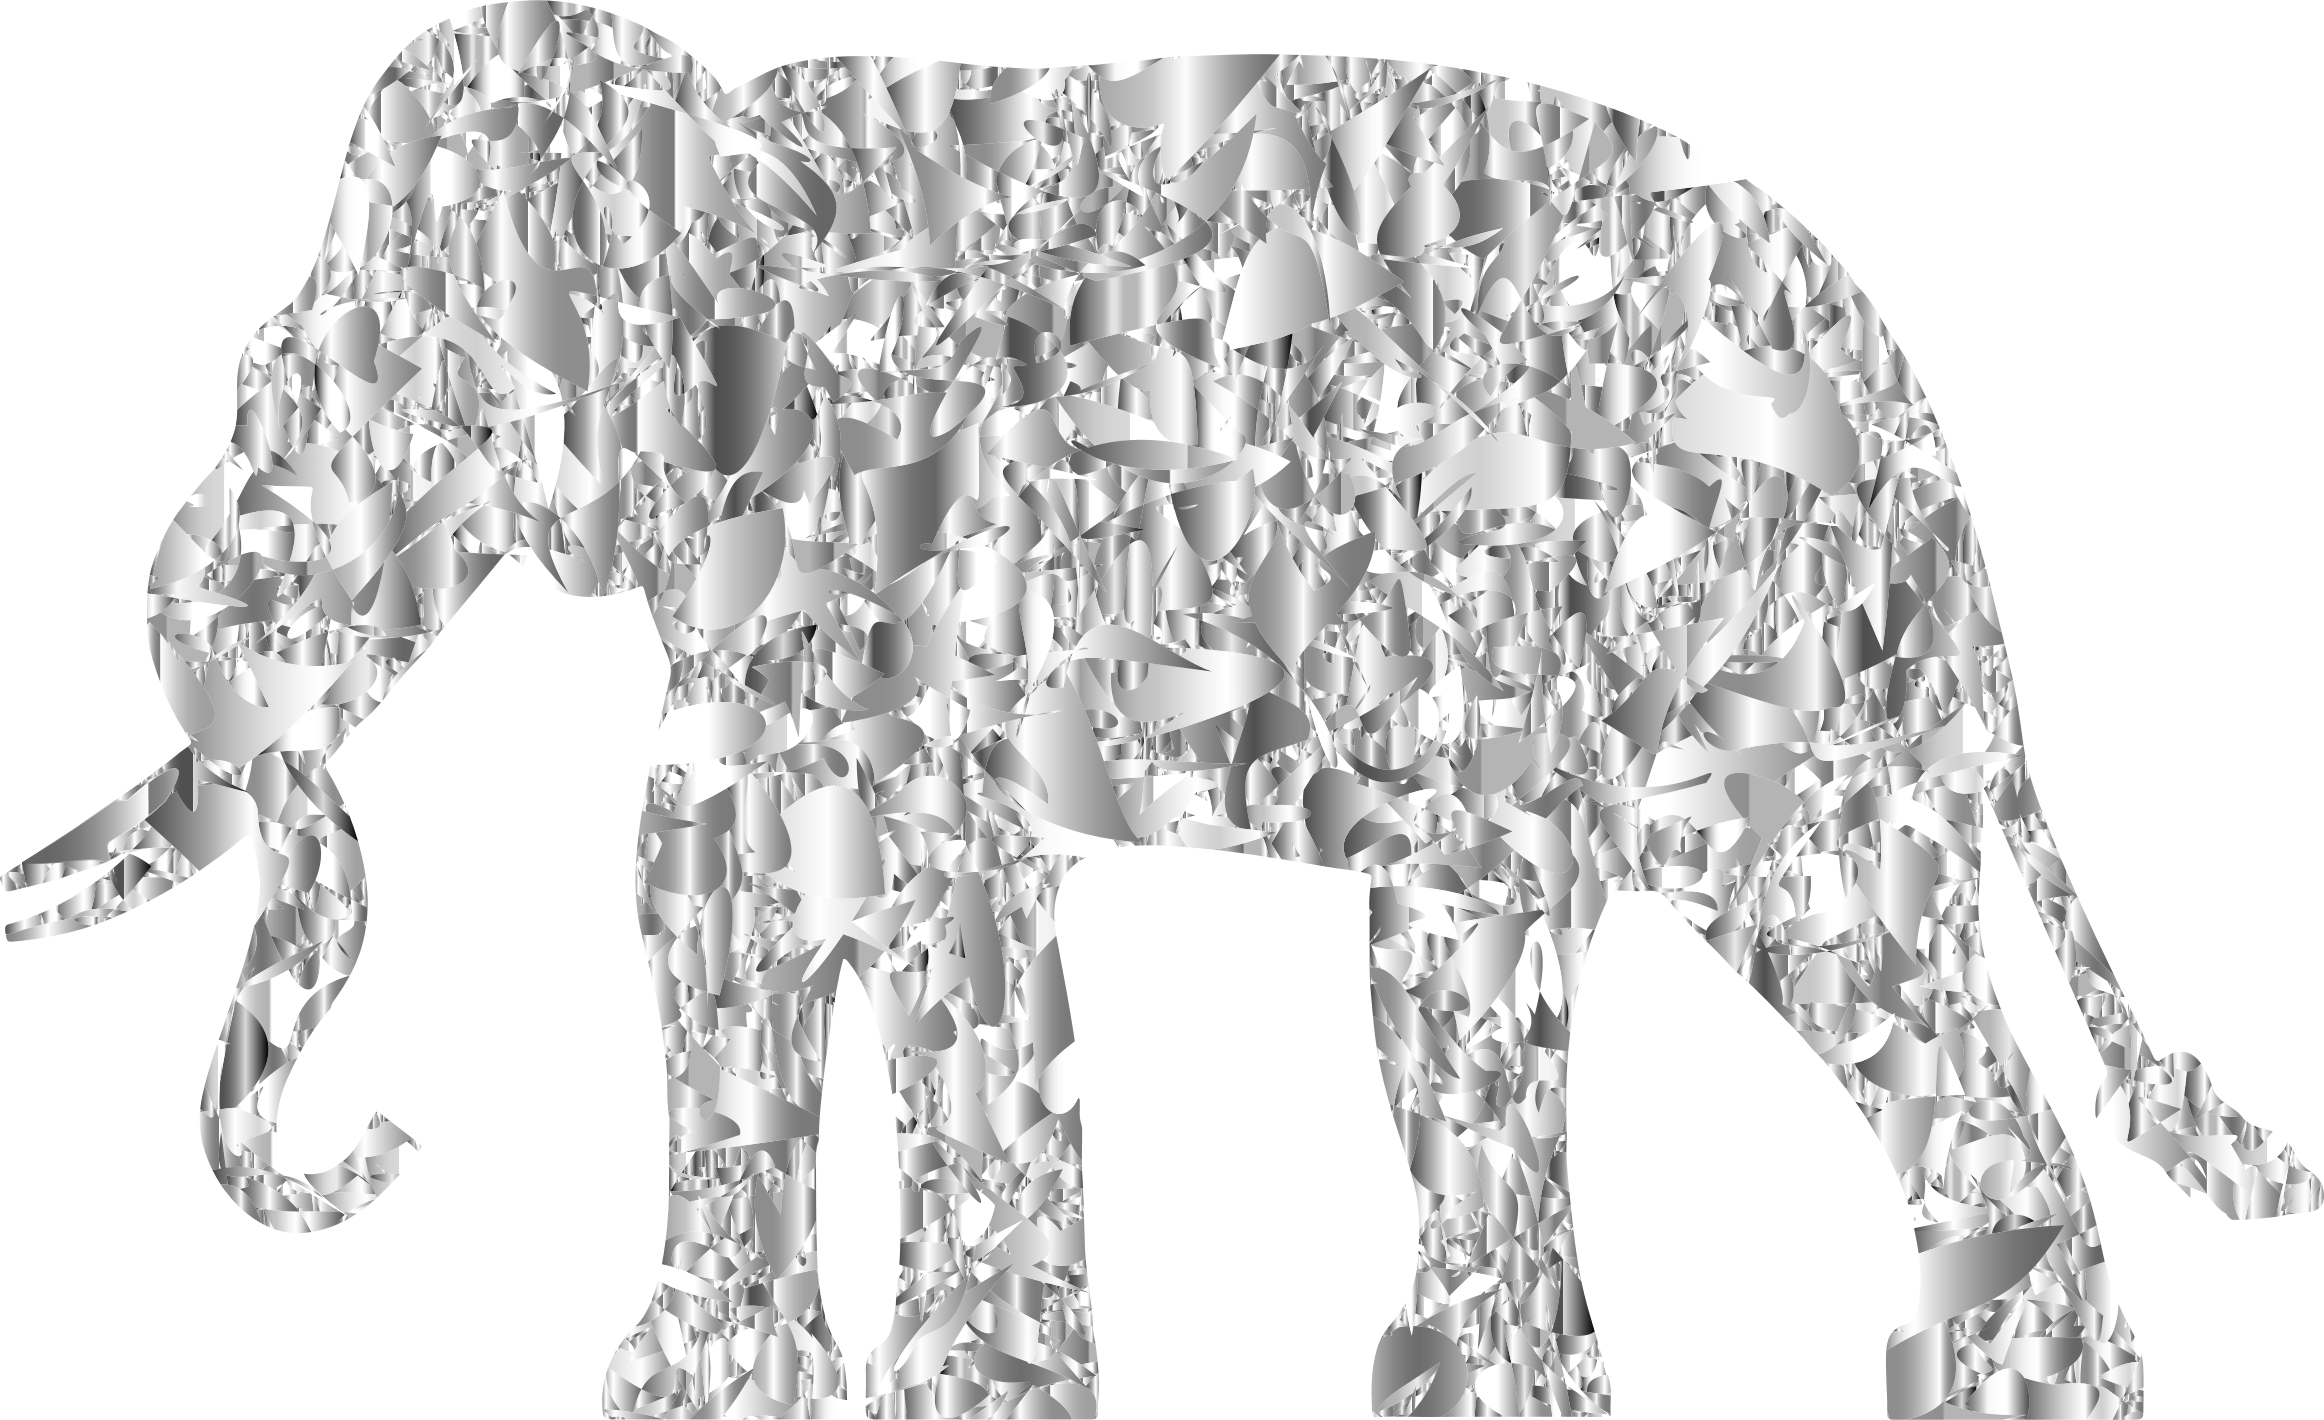 Modern Art Elephant Reactivated 2 by GDJ